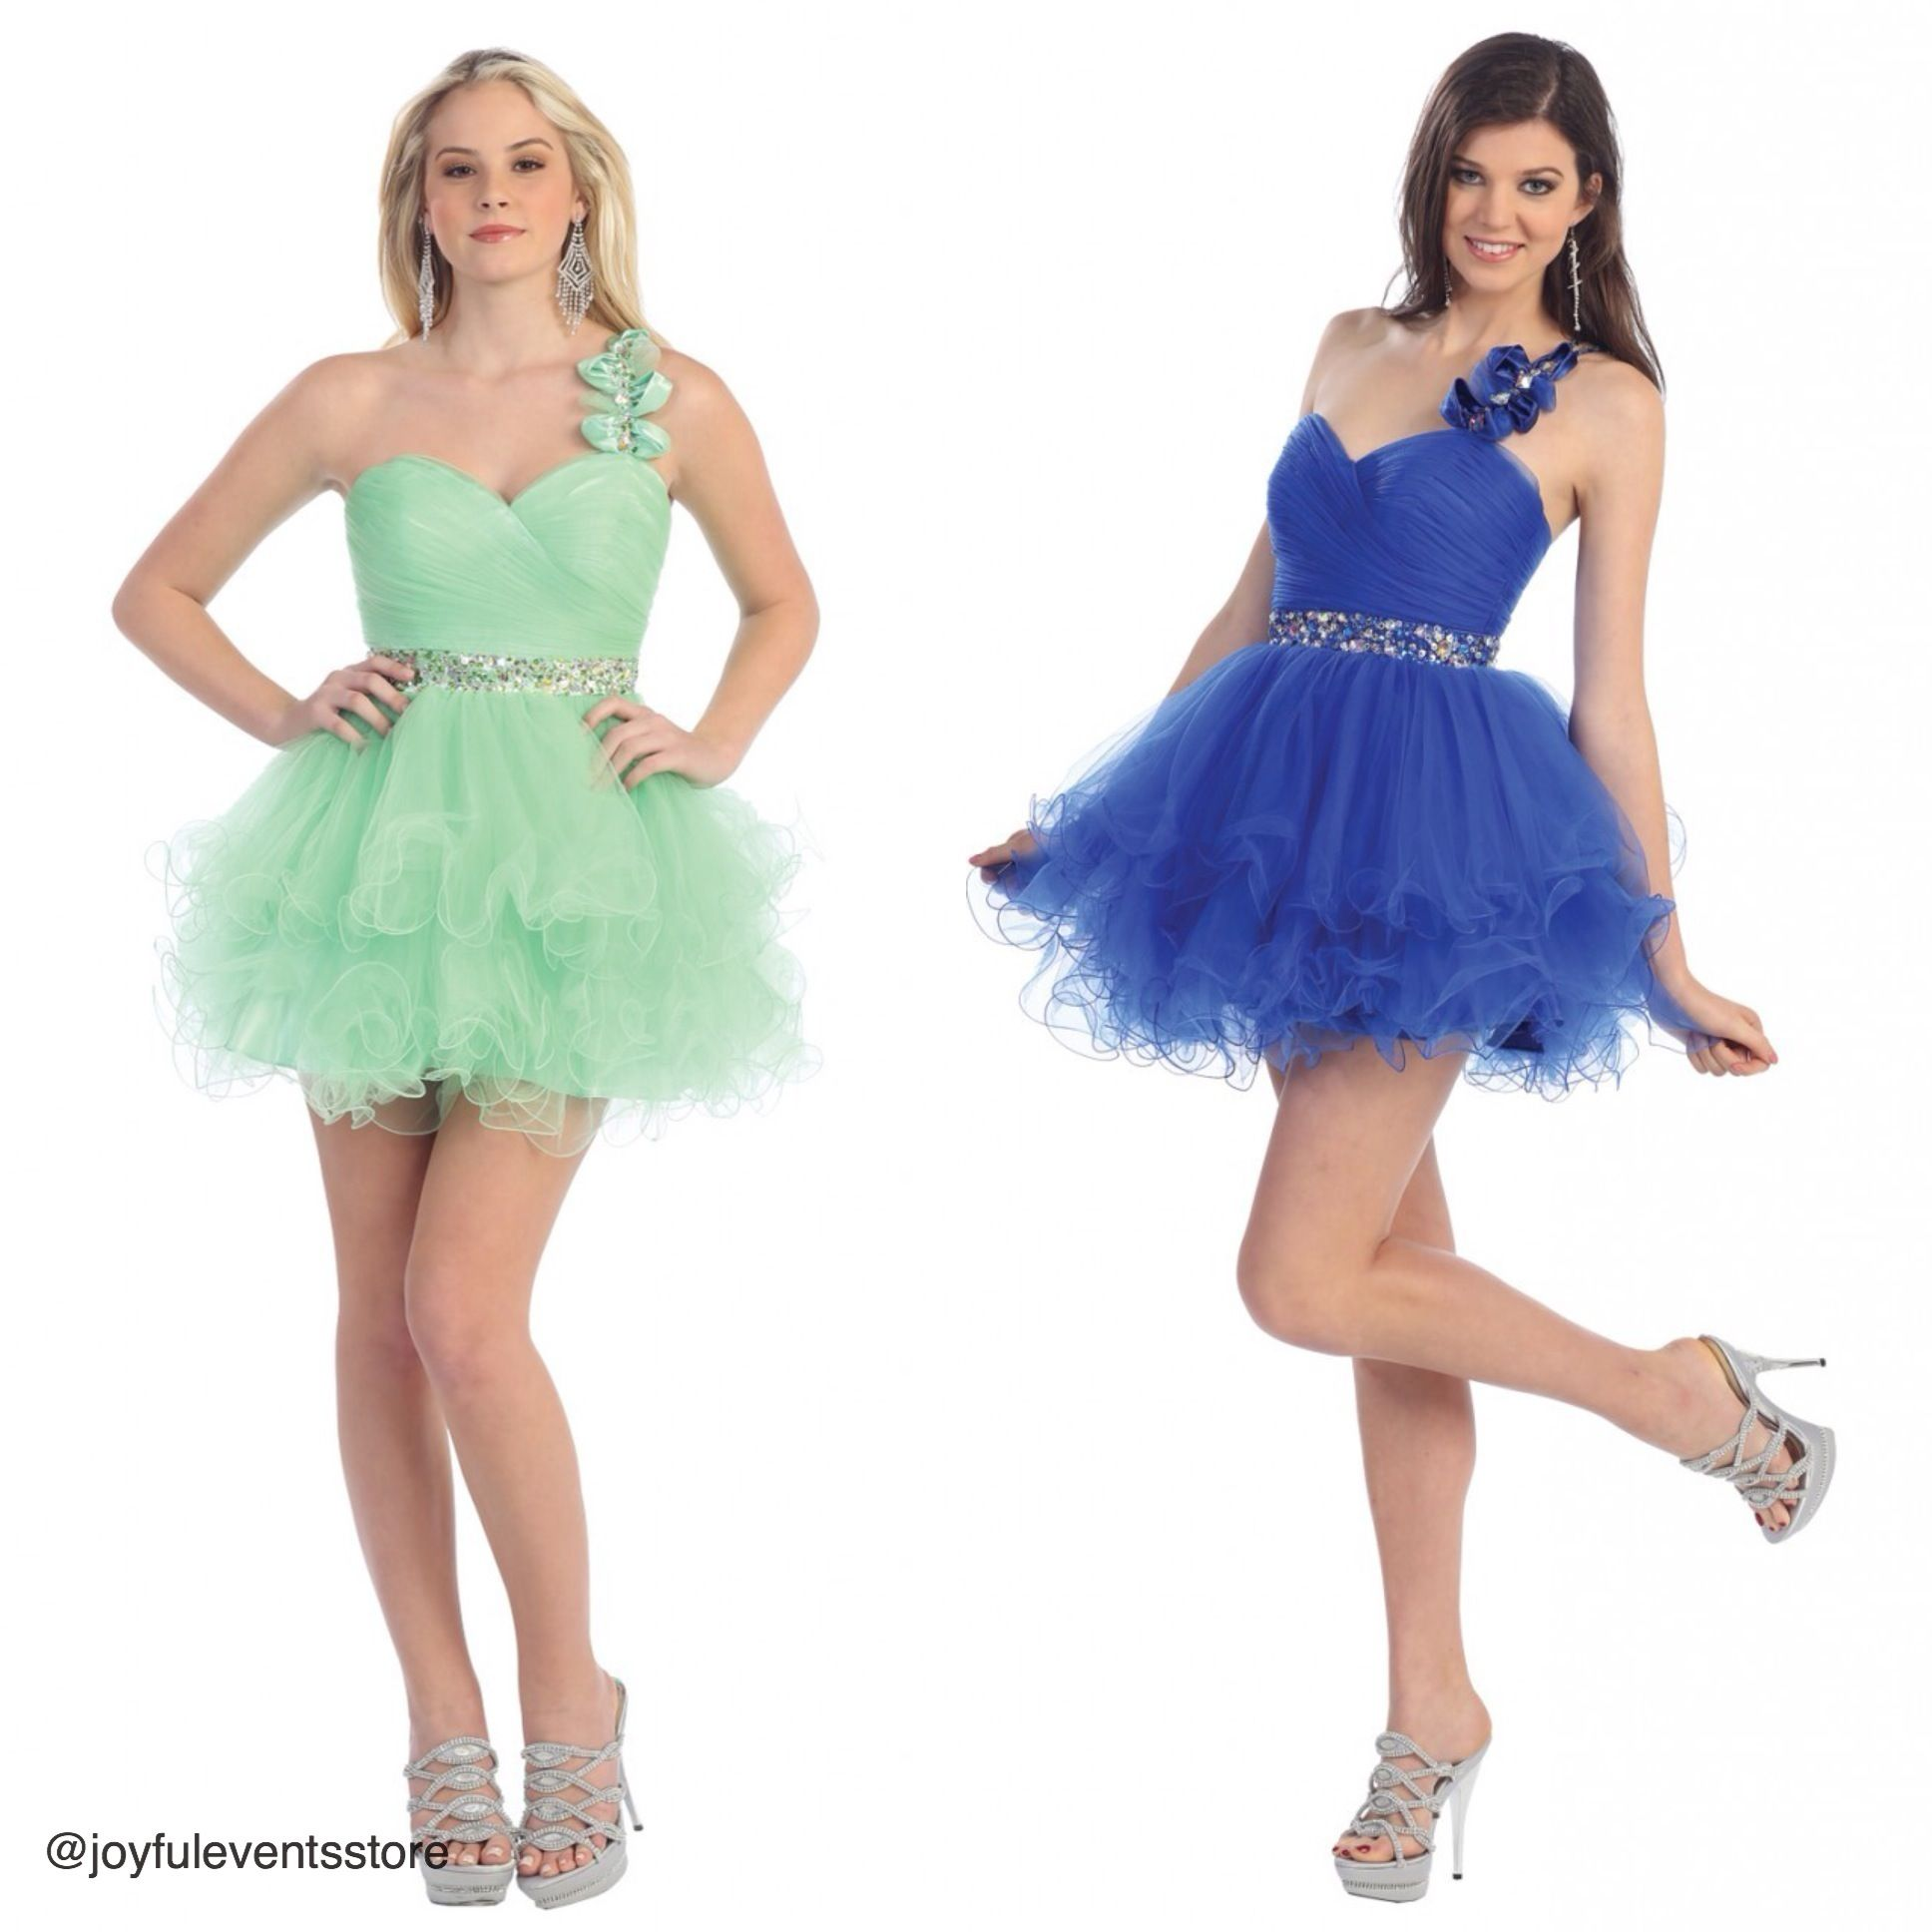 Change into for the surprise dance #quinceanera #quinces